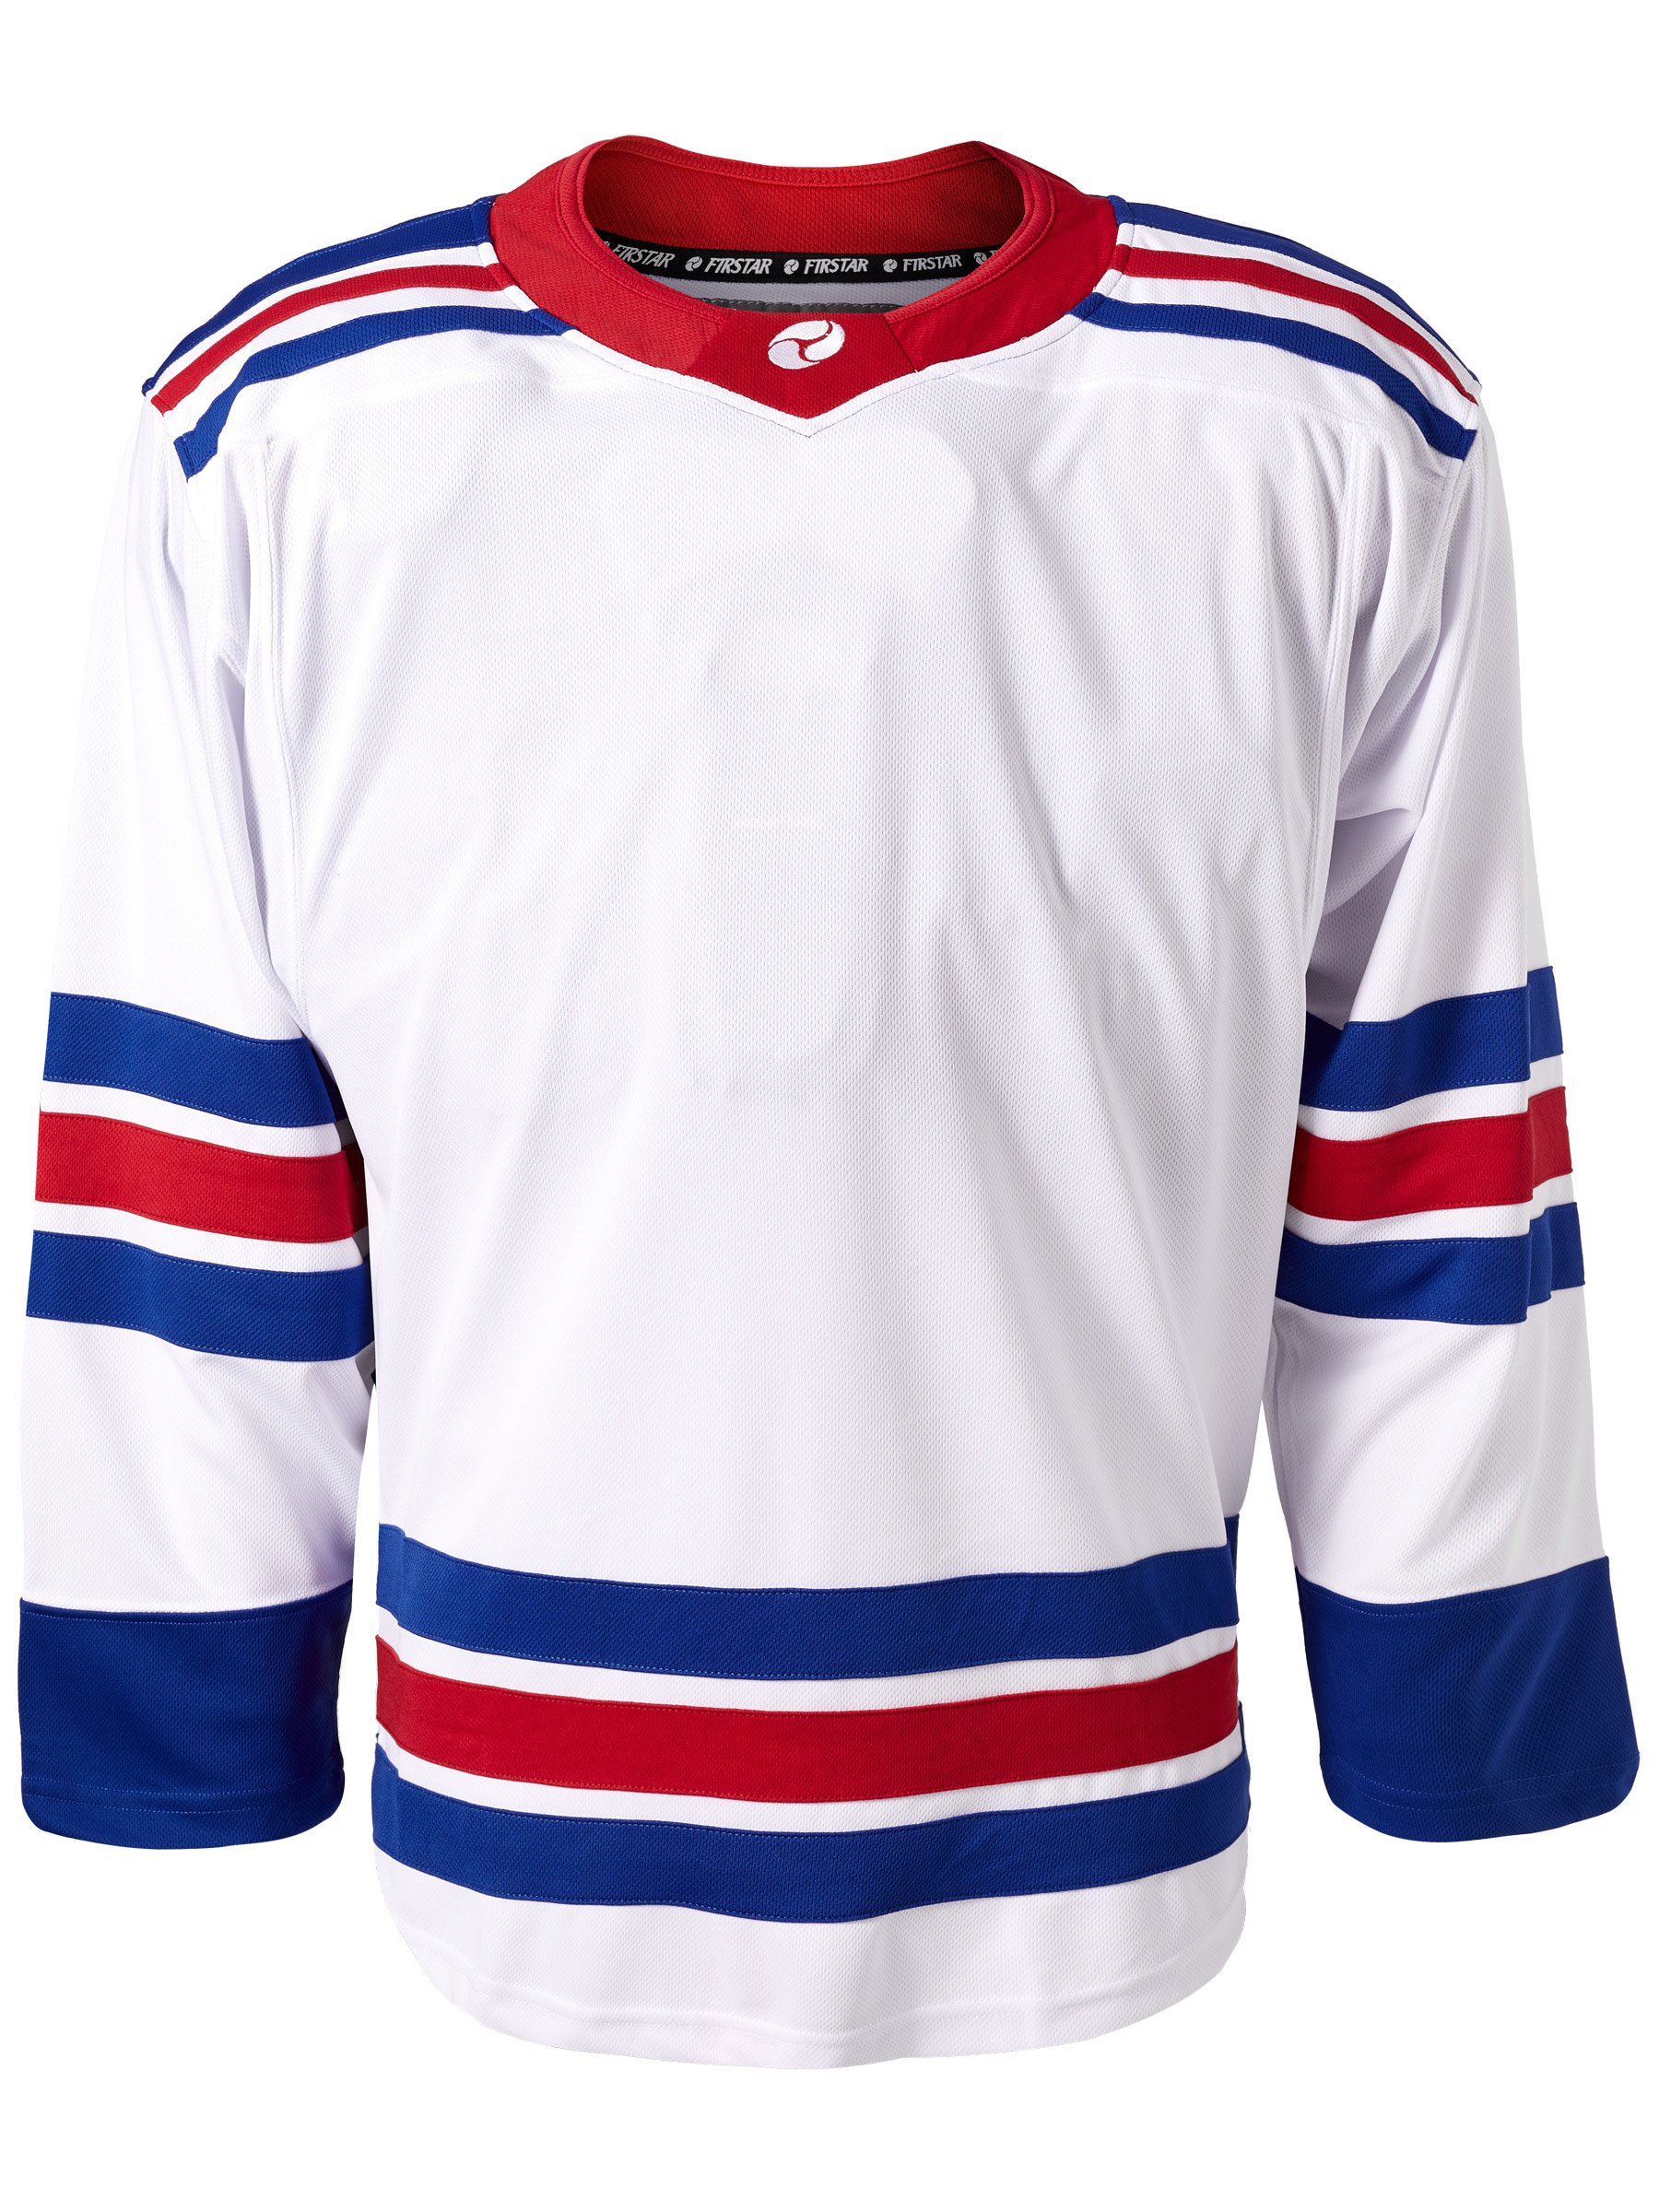 Firstar-Gamewear-Jersey-NewYork-White.jpeg